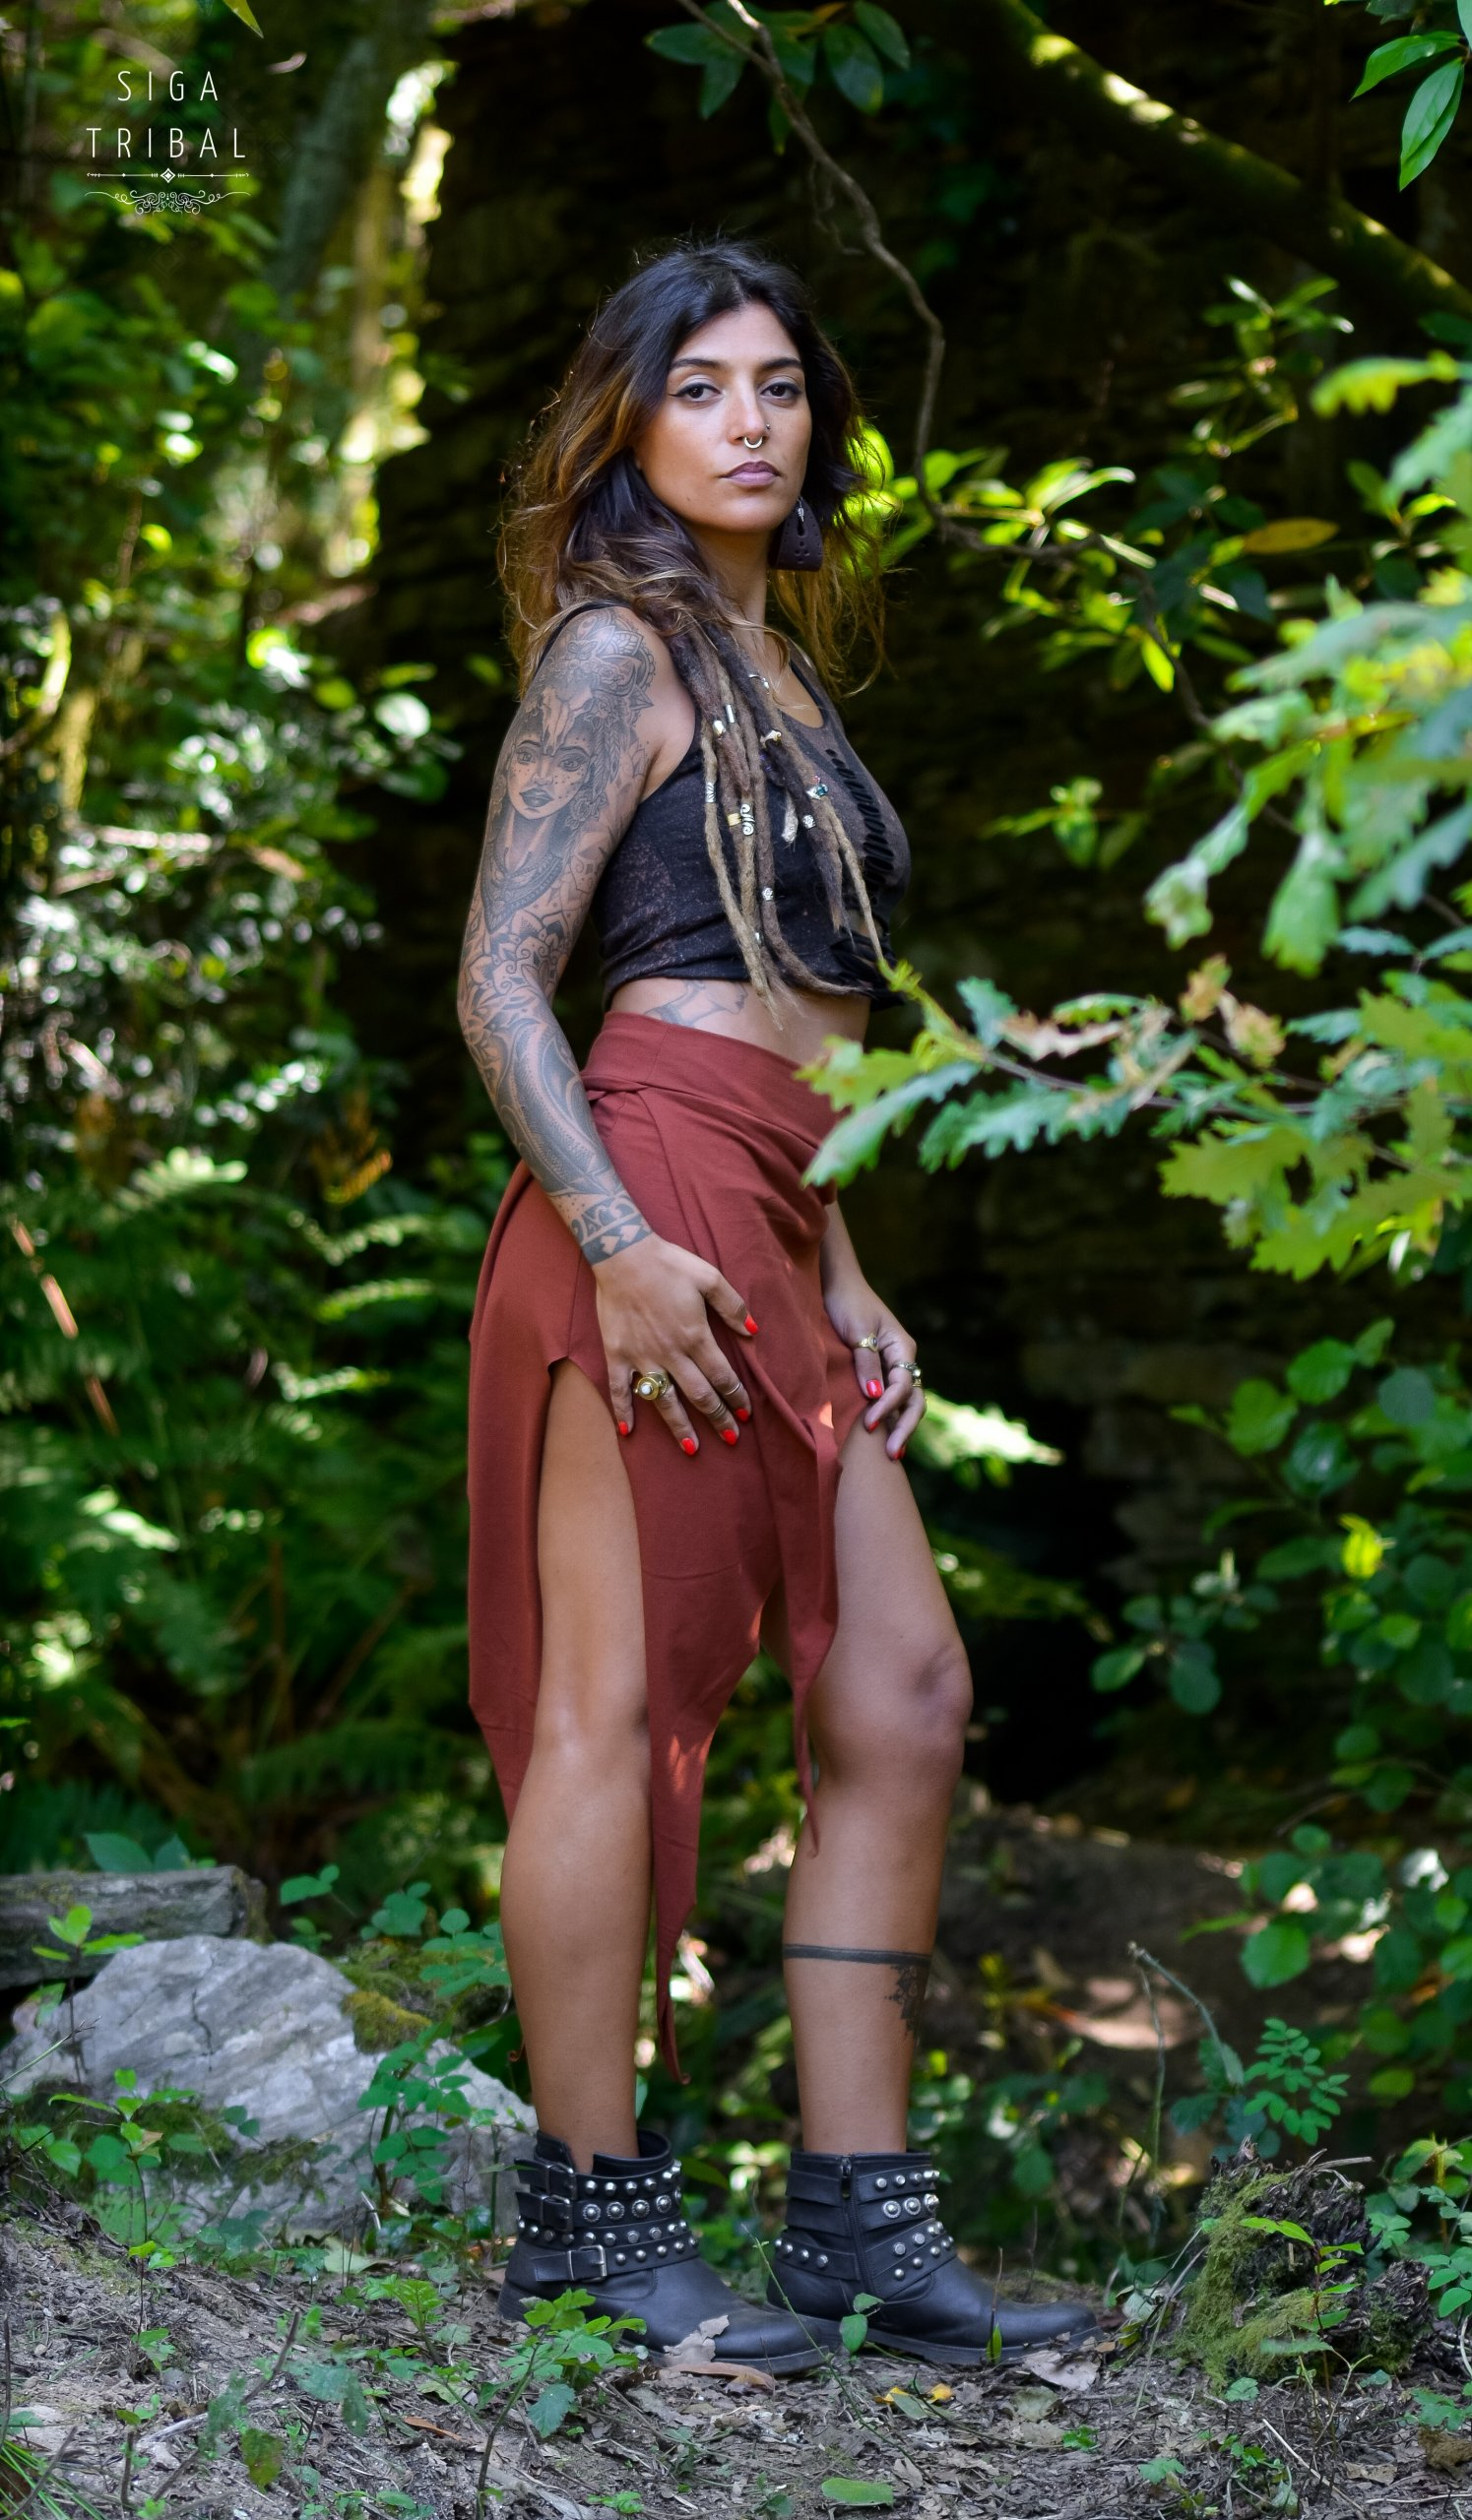 Pixie Skirt by Siga Tribal